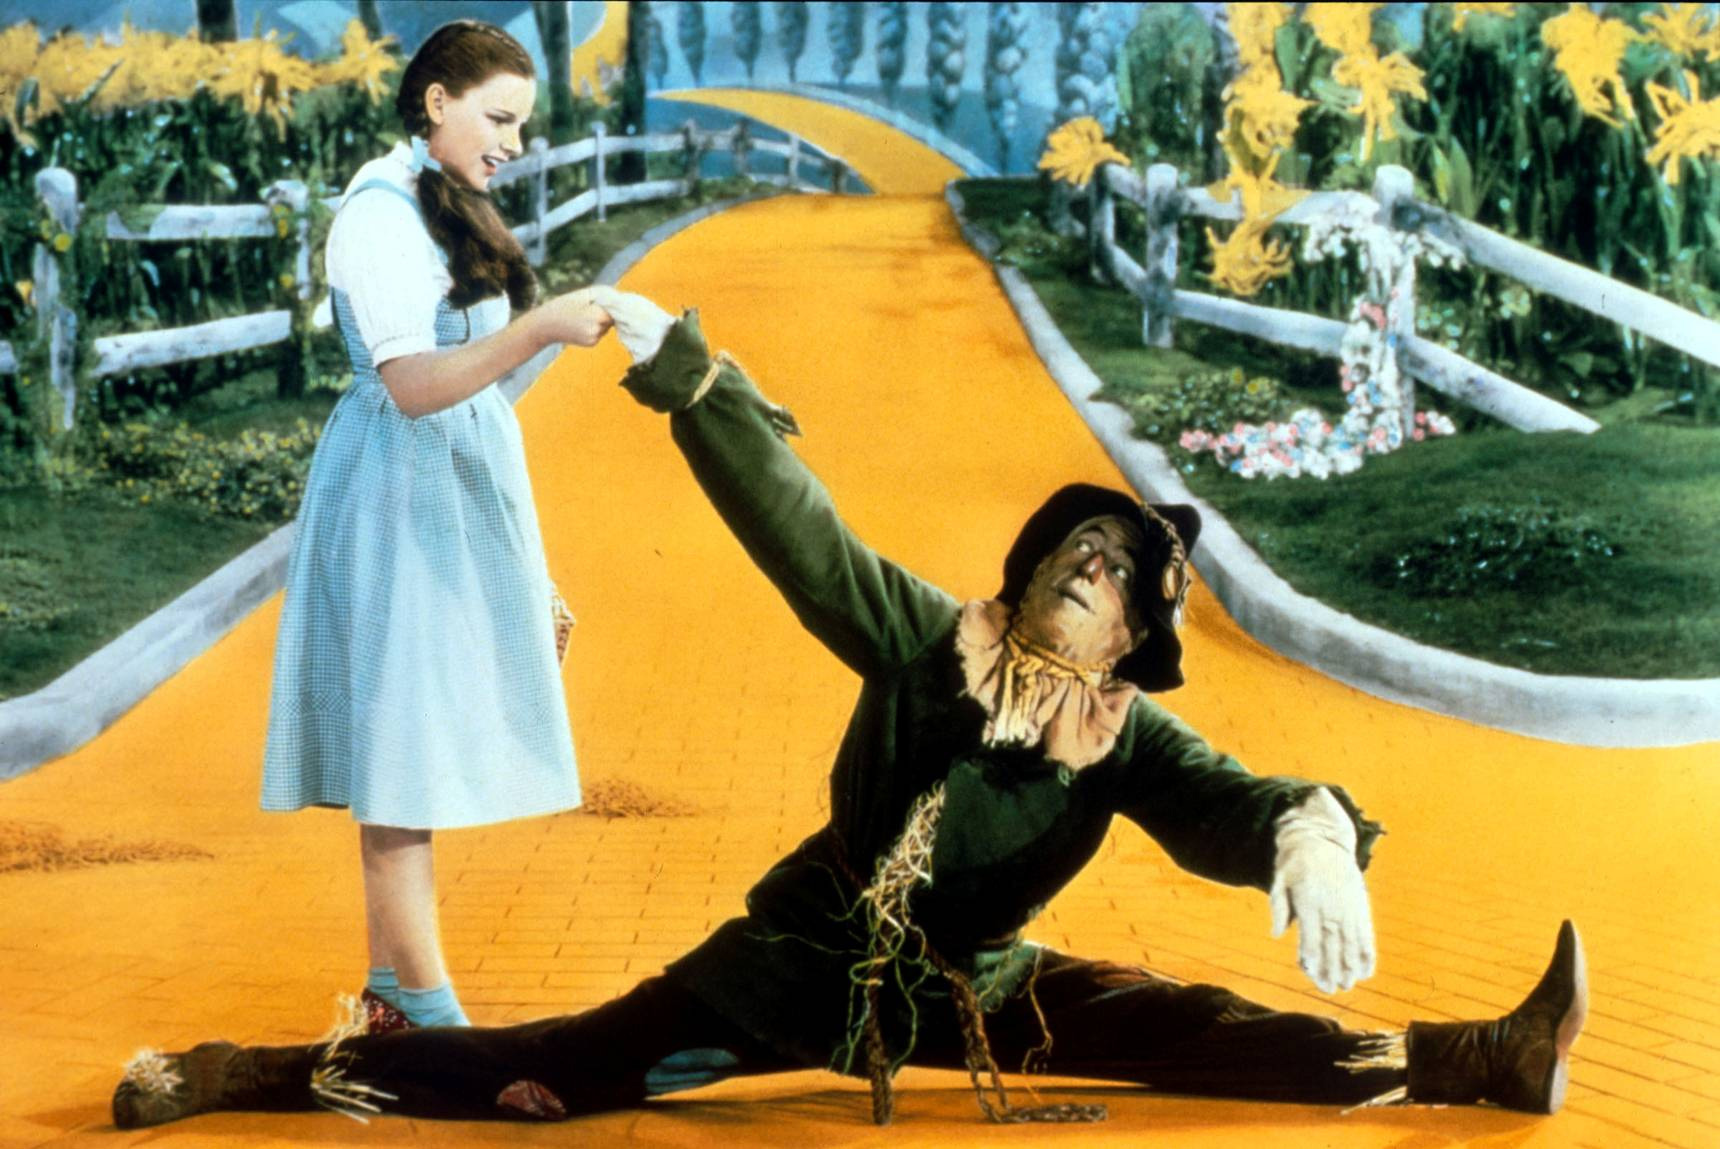 The wizard of oz alternate movie ending